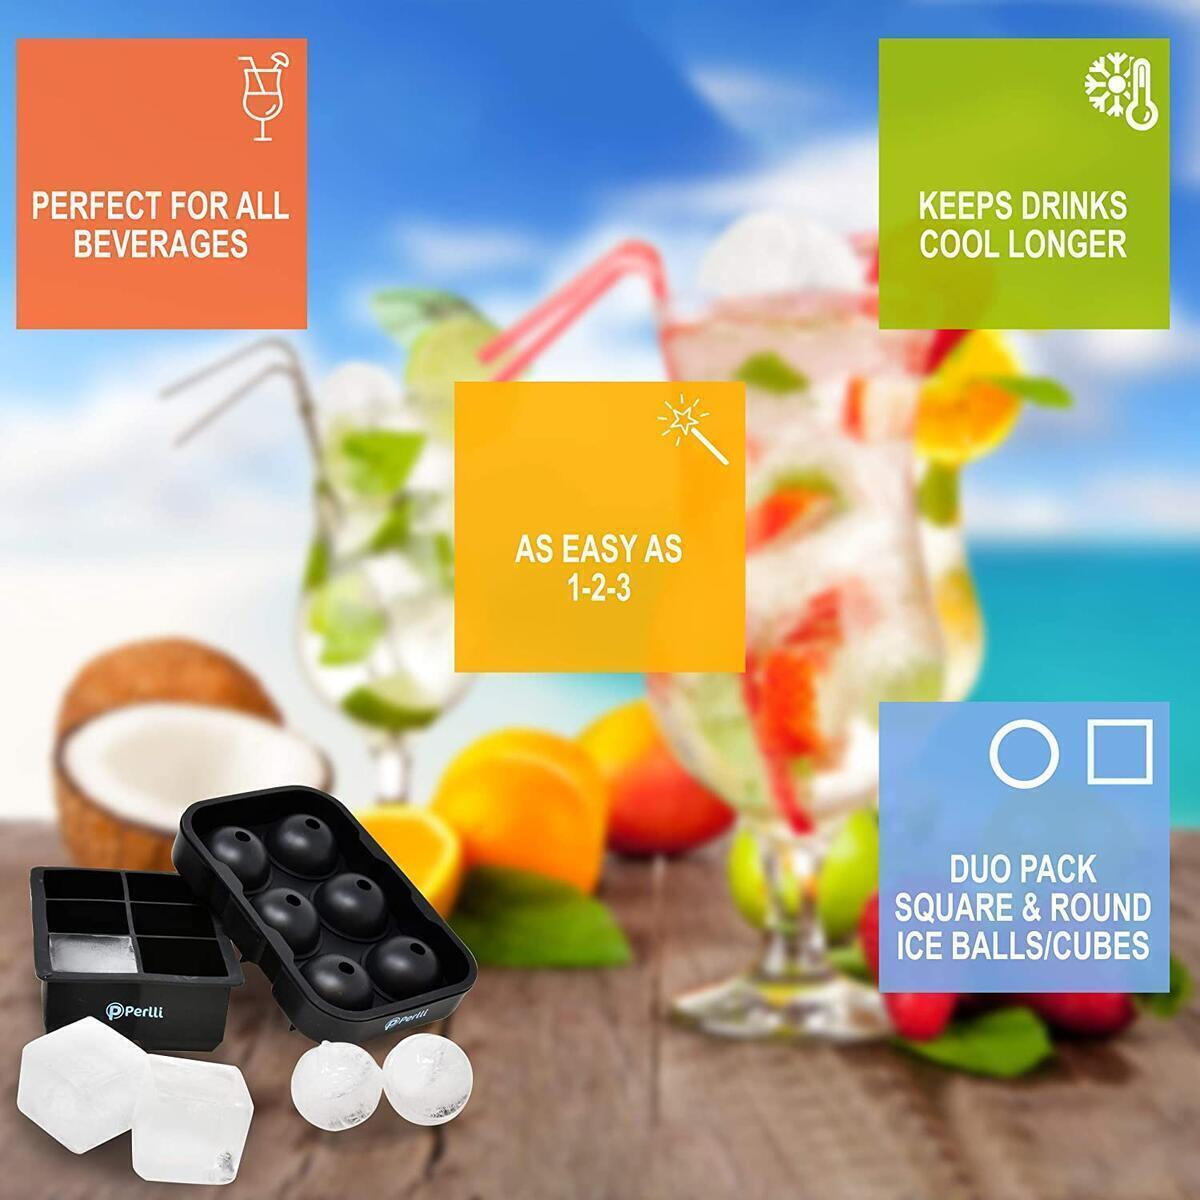 Perlli Ice Cube Trays Silicone Molds Set of 2 whiskey Large Sphere Ice Ball Maker Mold with Lid & Big Square Ice Cube Tray for Cocktails Bourbon & Scotch - Reusable BPA Free Silicon Ice Molds